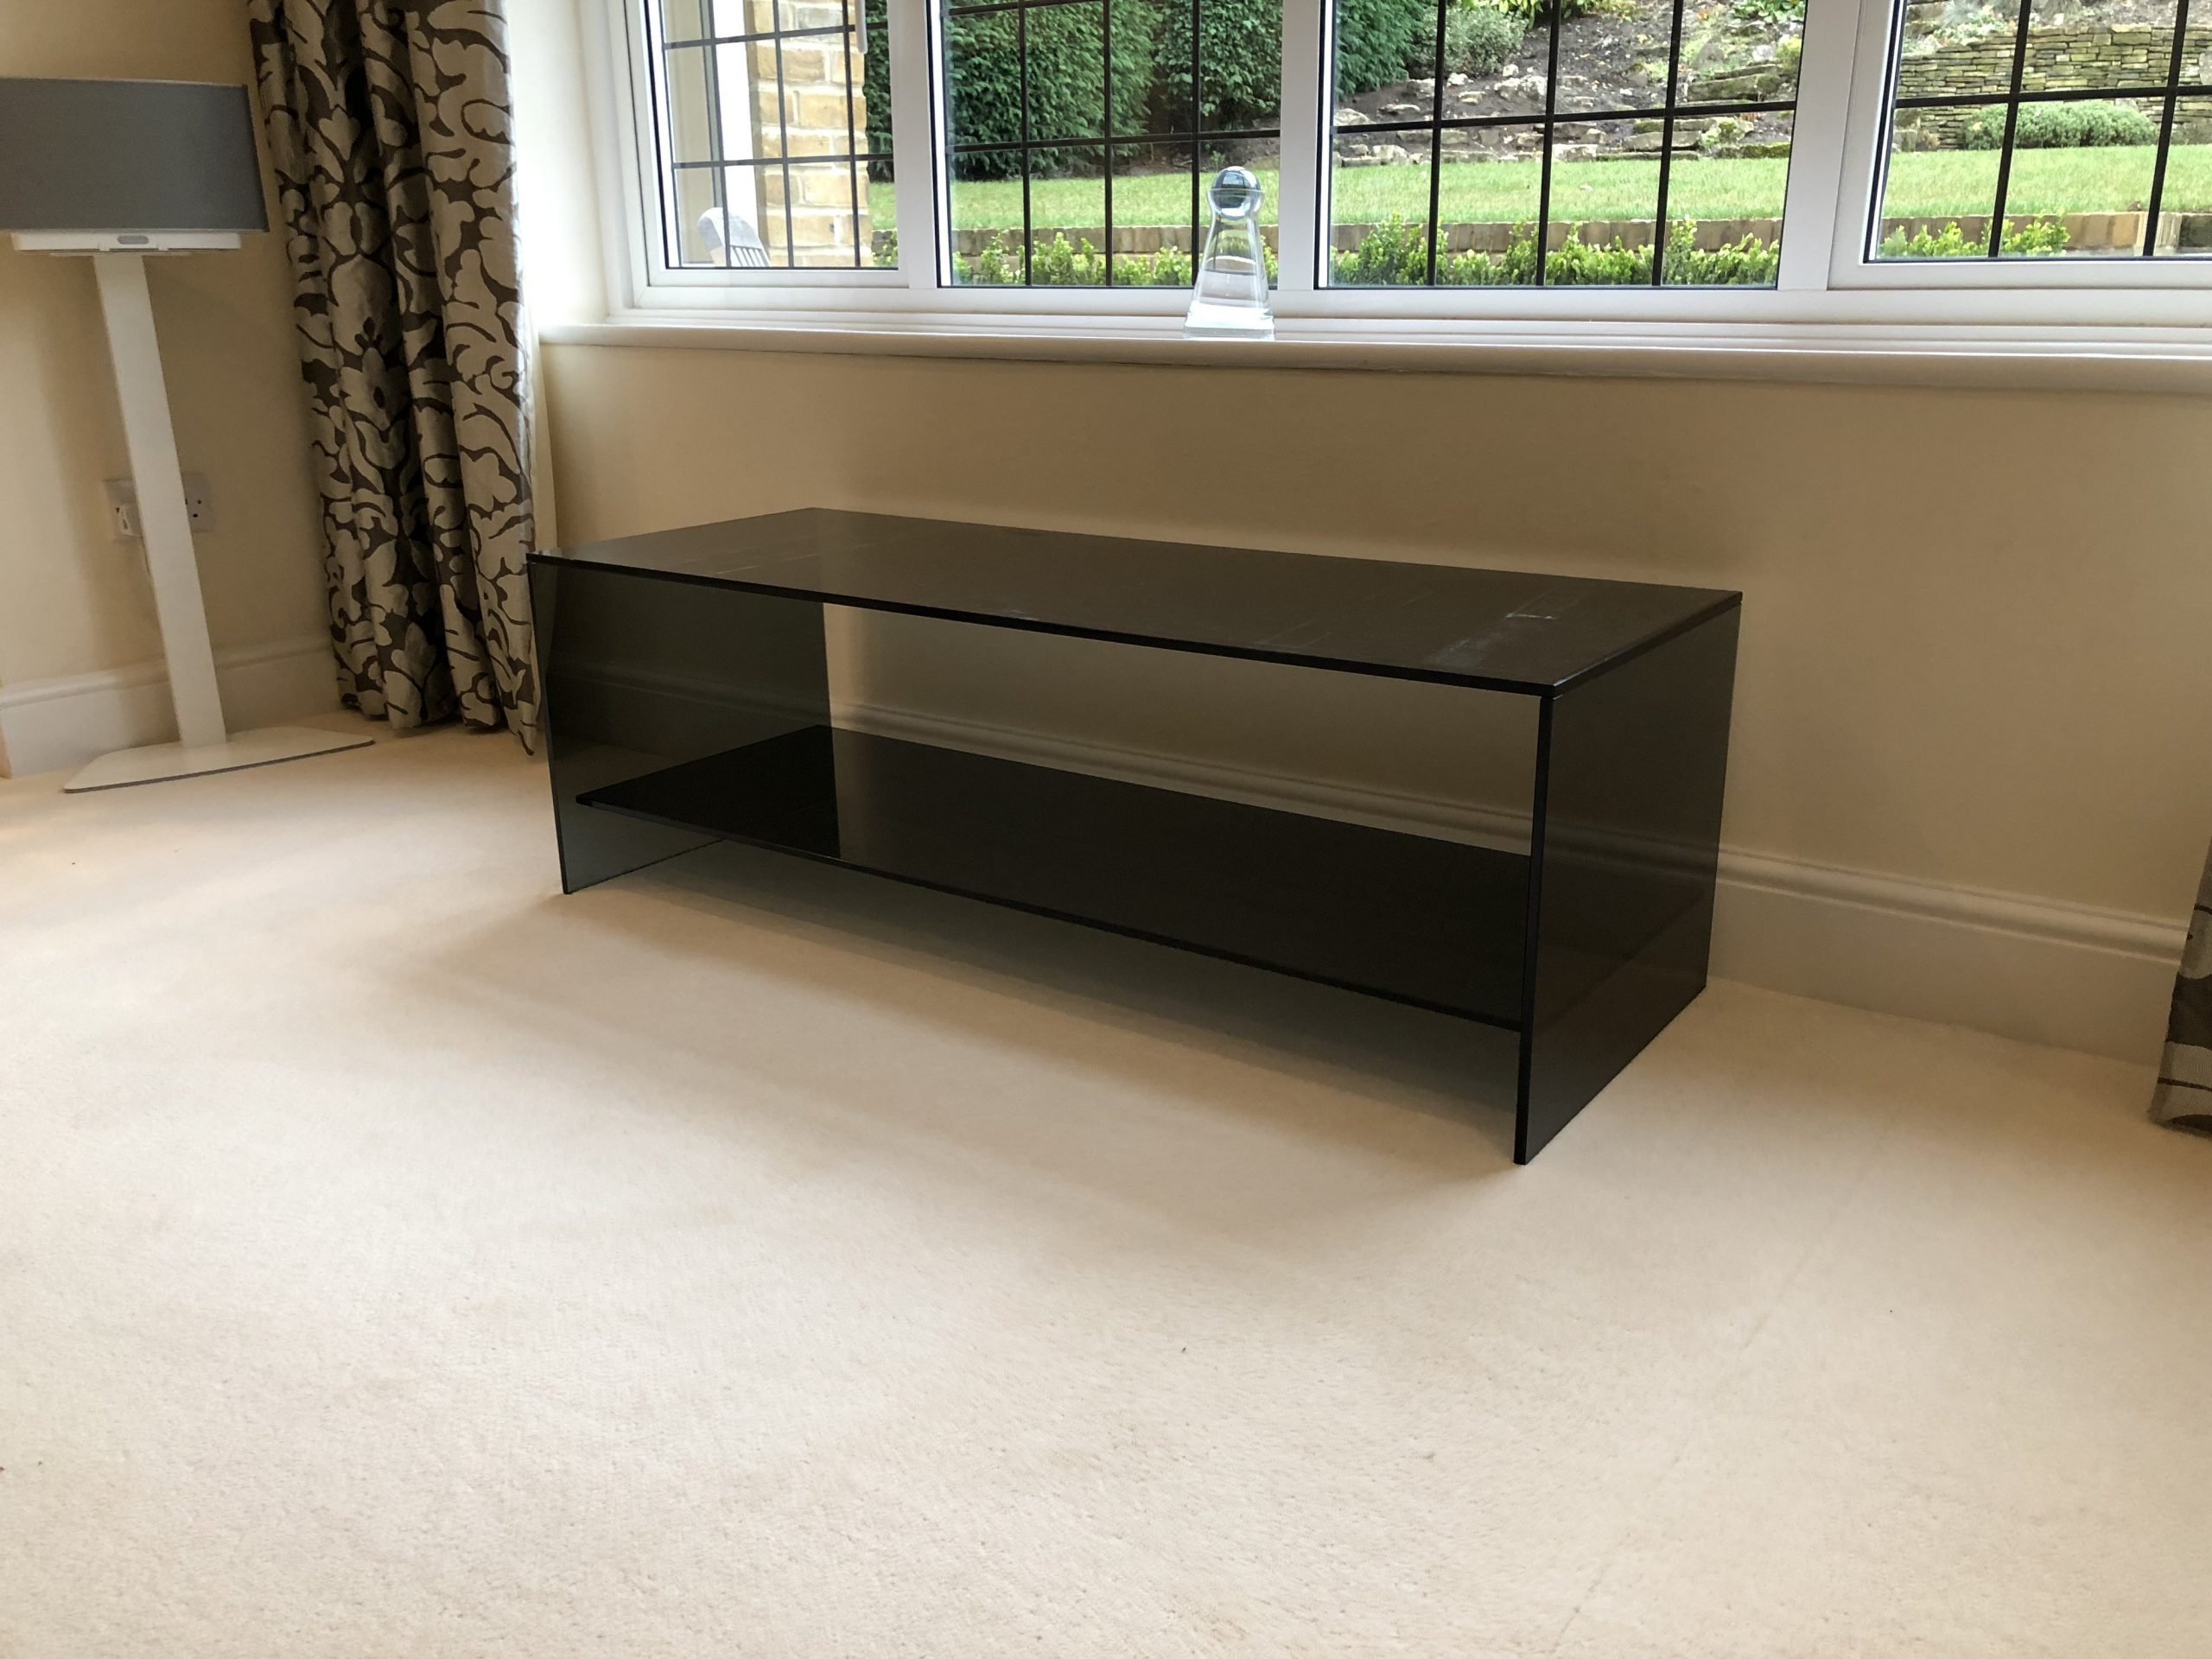 Smoked Glass Coffee Table with Shelf